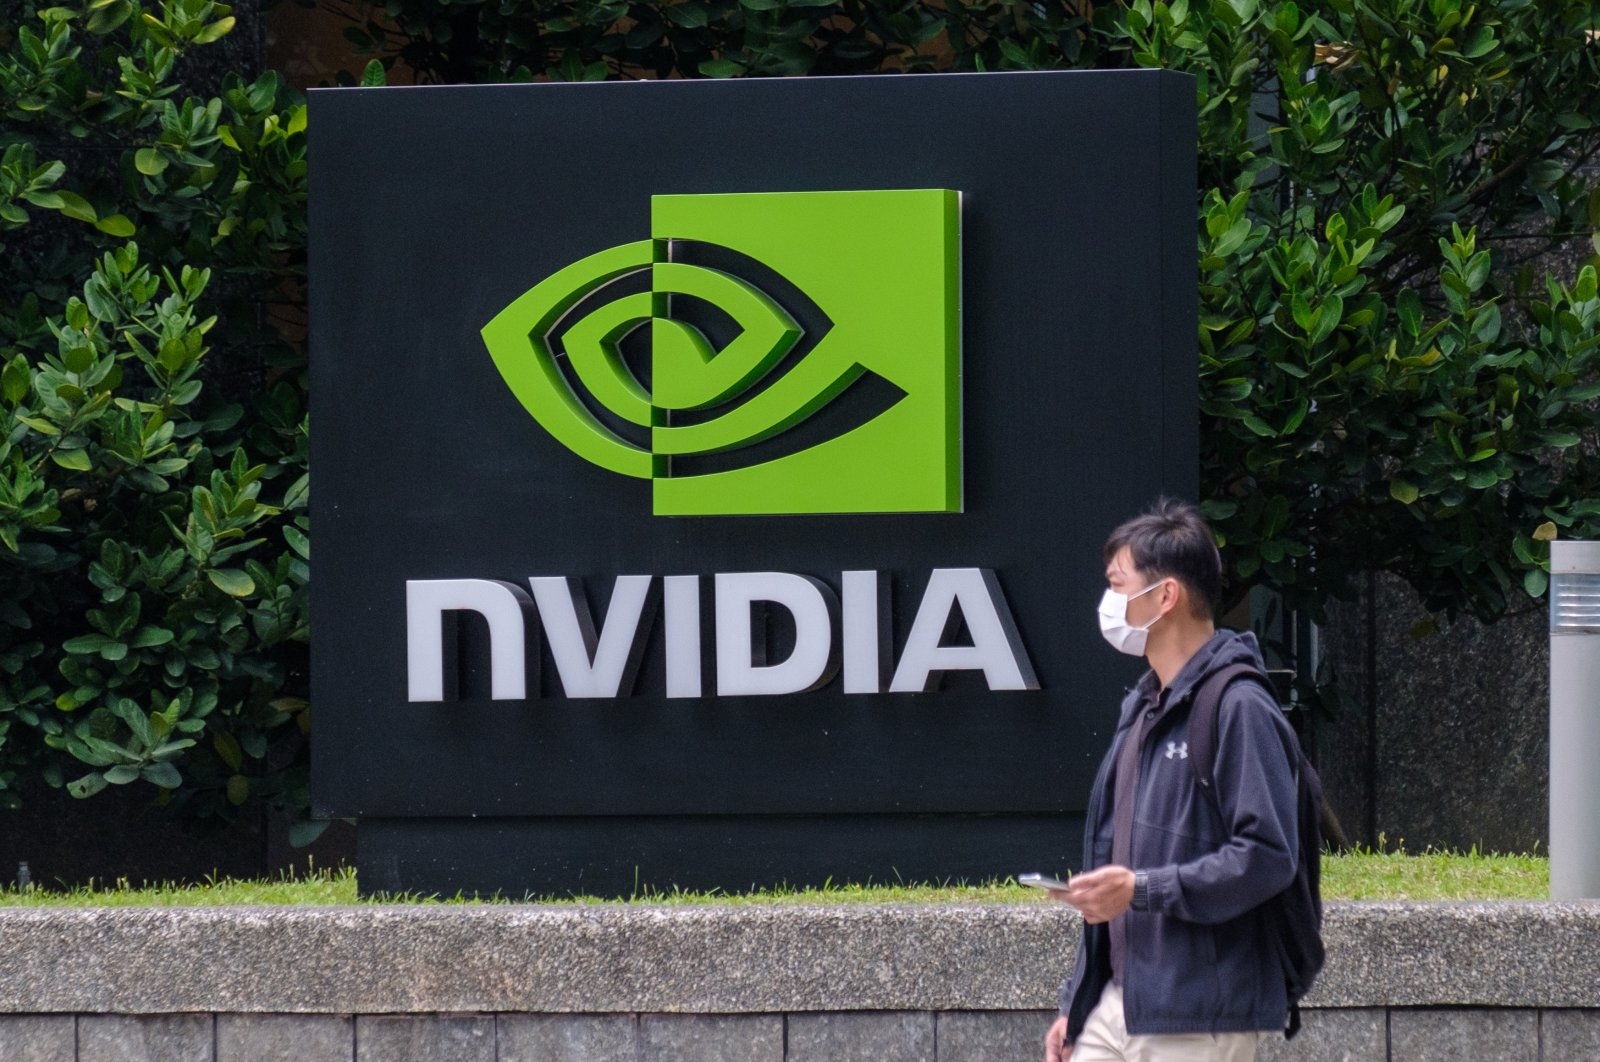 A man is seen passing by the Nvidia logo at the American GPU manufacturer's Taipei office in Taiwan, March 30, 2021. (Reuters Photo)